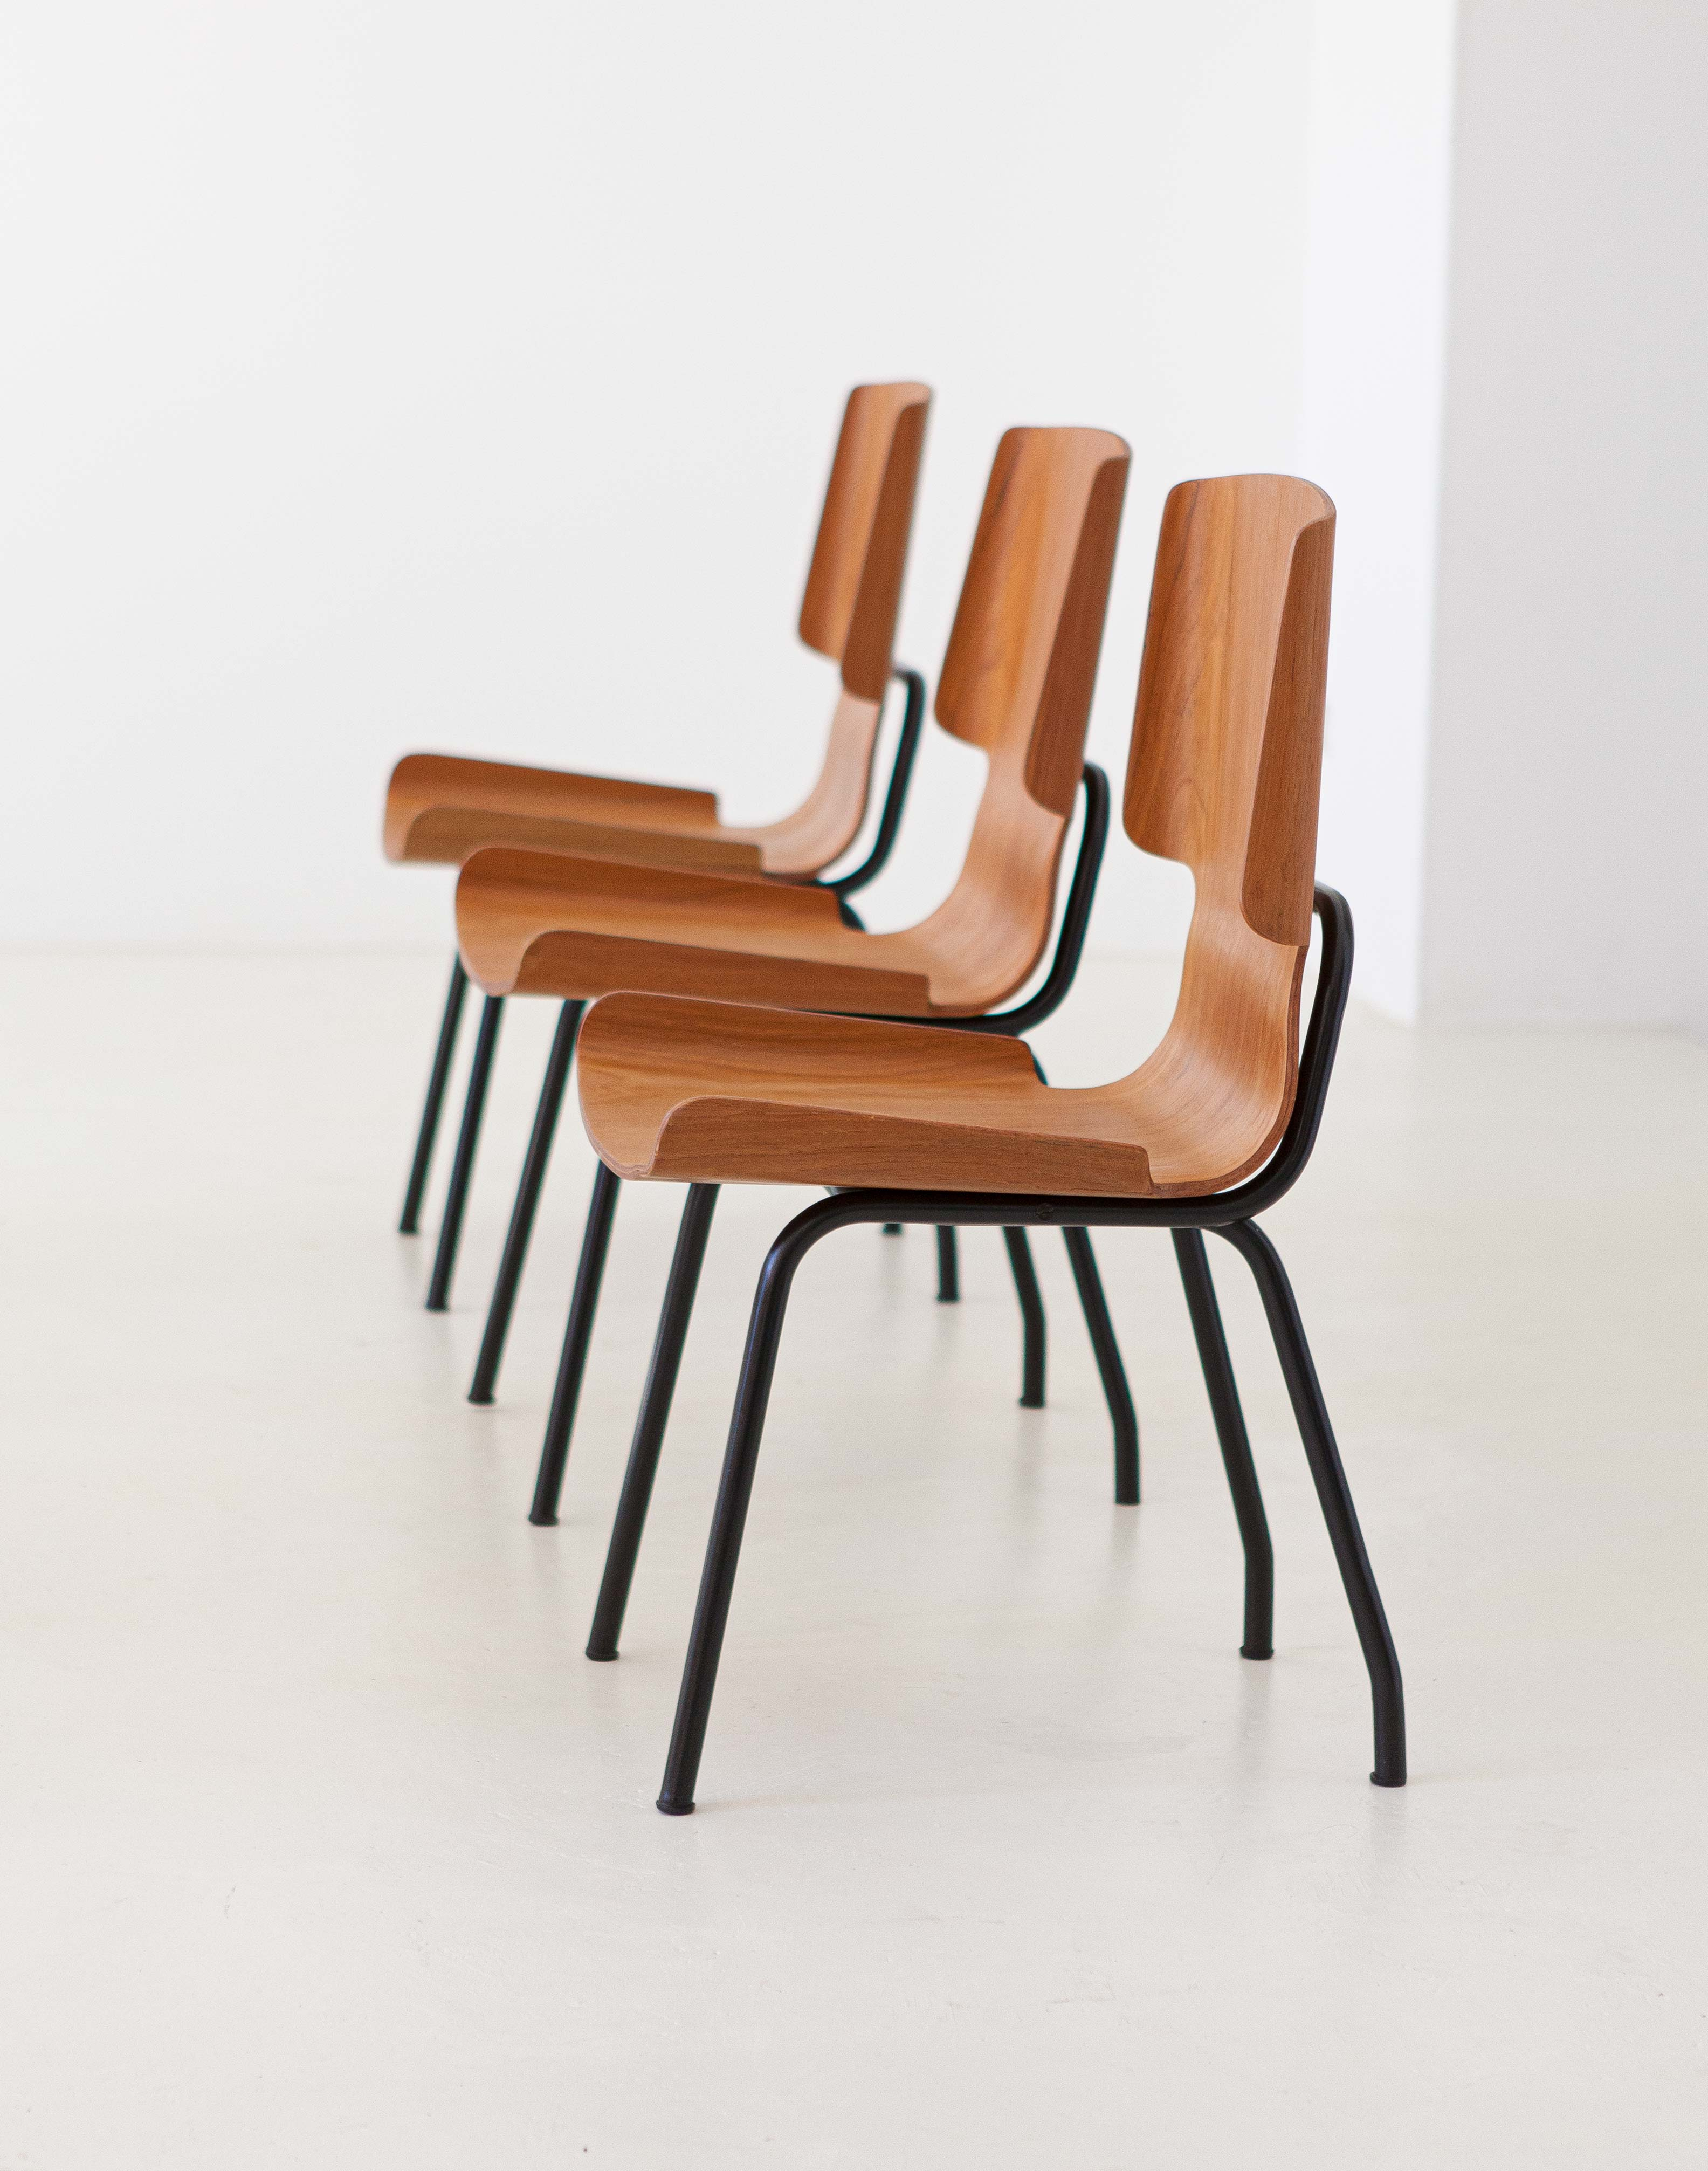 1950s-set-of-six-curved-teak-chairs-by-carlo-ratti-3-se311